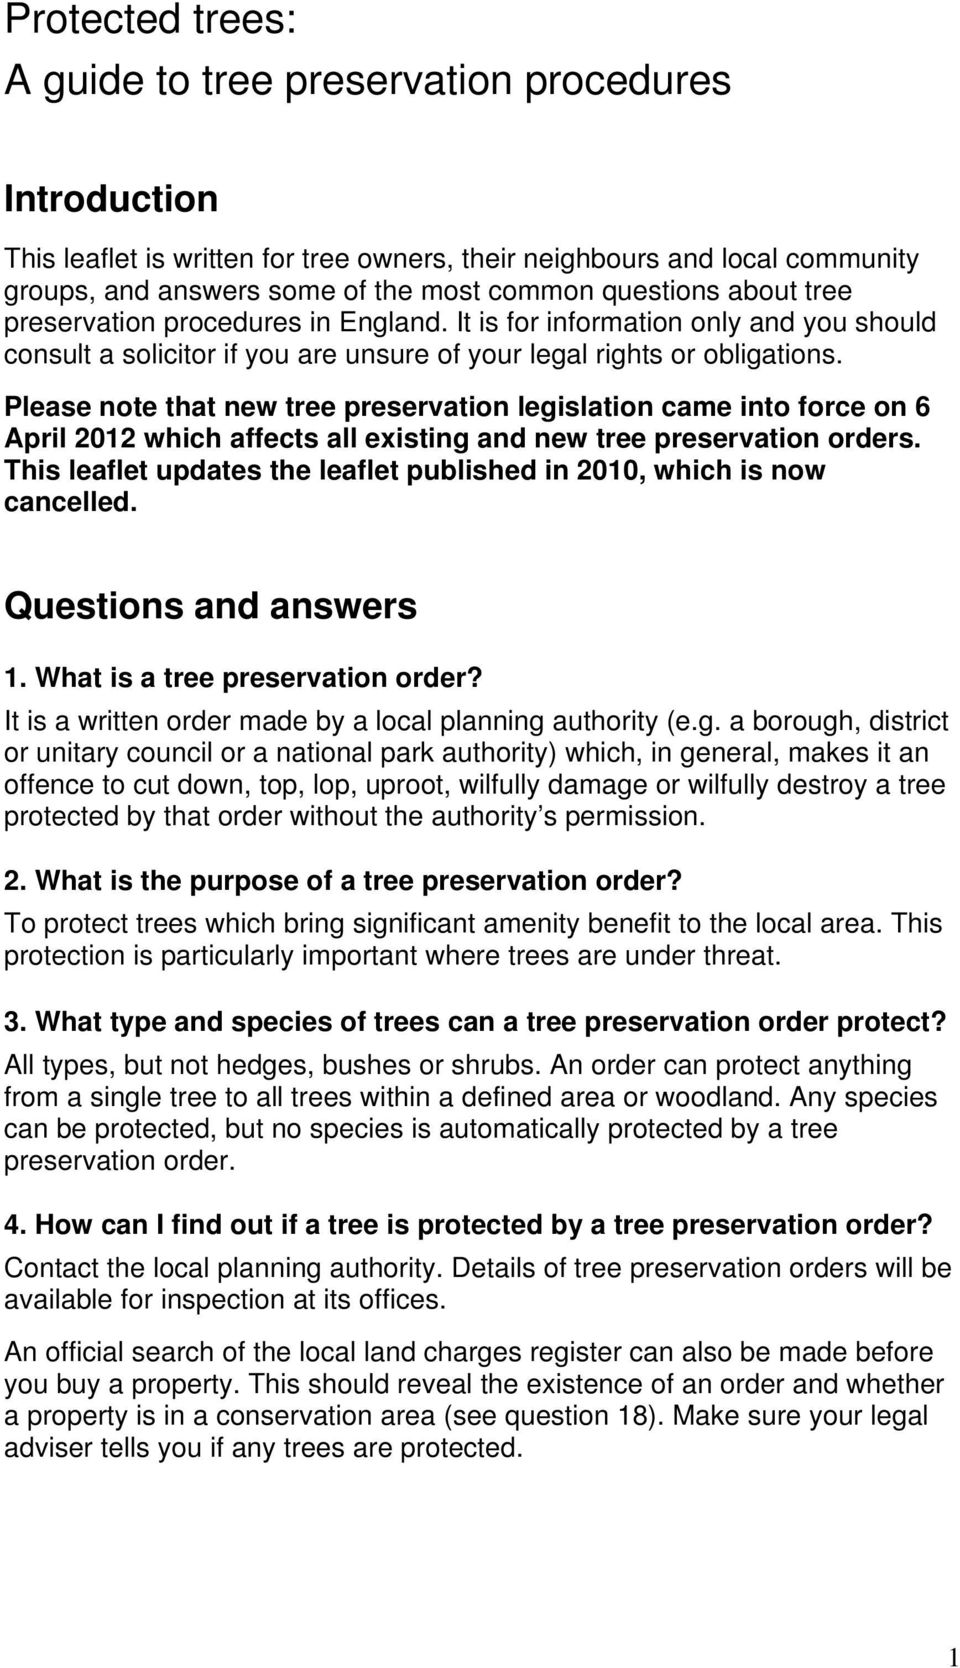 Please note that new tree preservation legislation came into force on 6 April 2012 which affects all existing and new tree preservation orders.